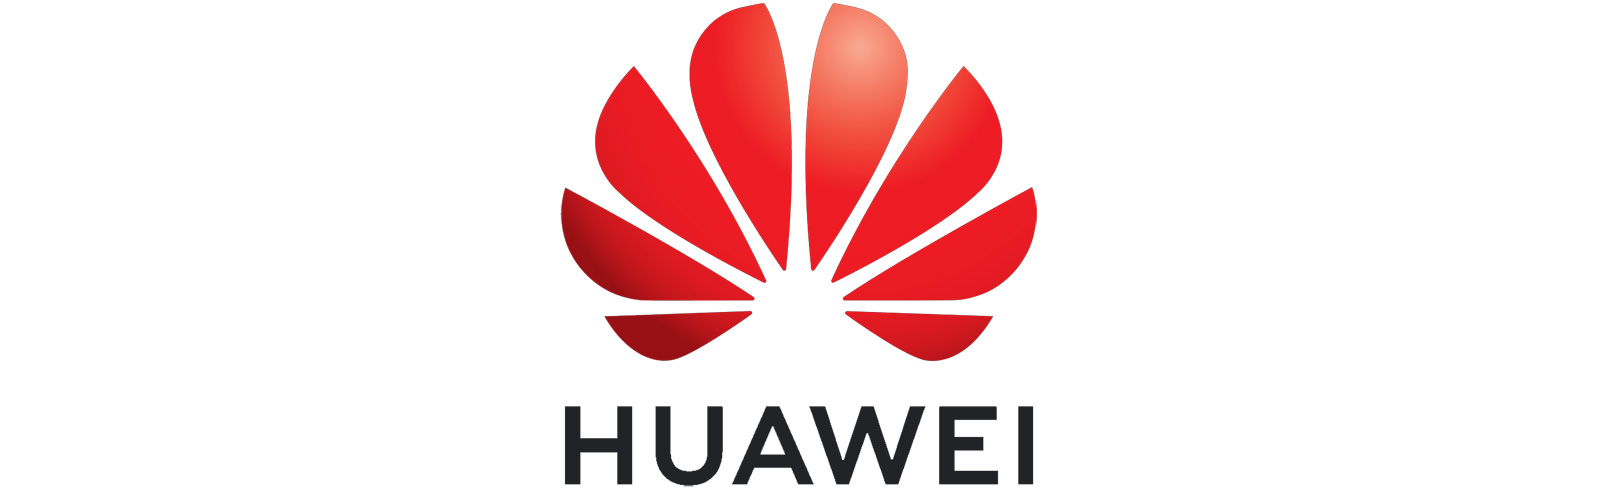 Google, Broadcom, Intel, Xillix, Qualcomm and other US companies suspend business with Huawei